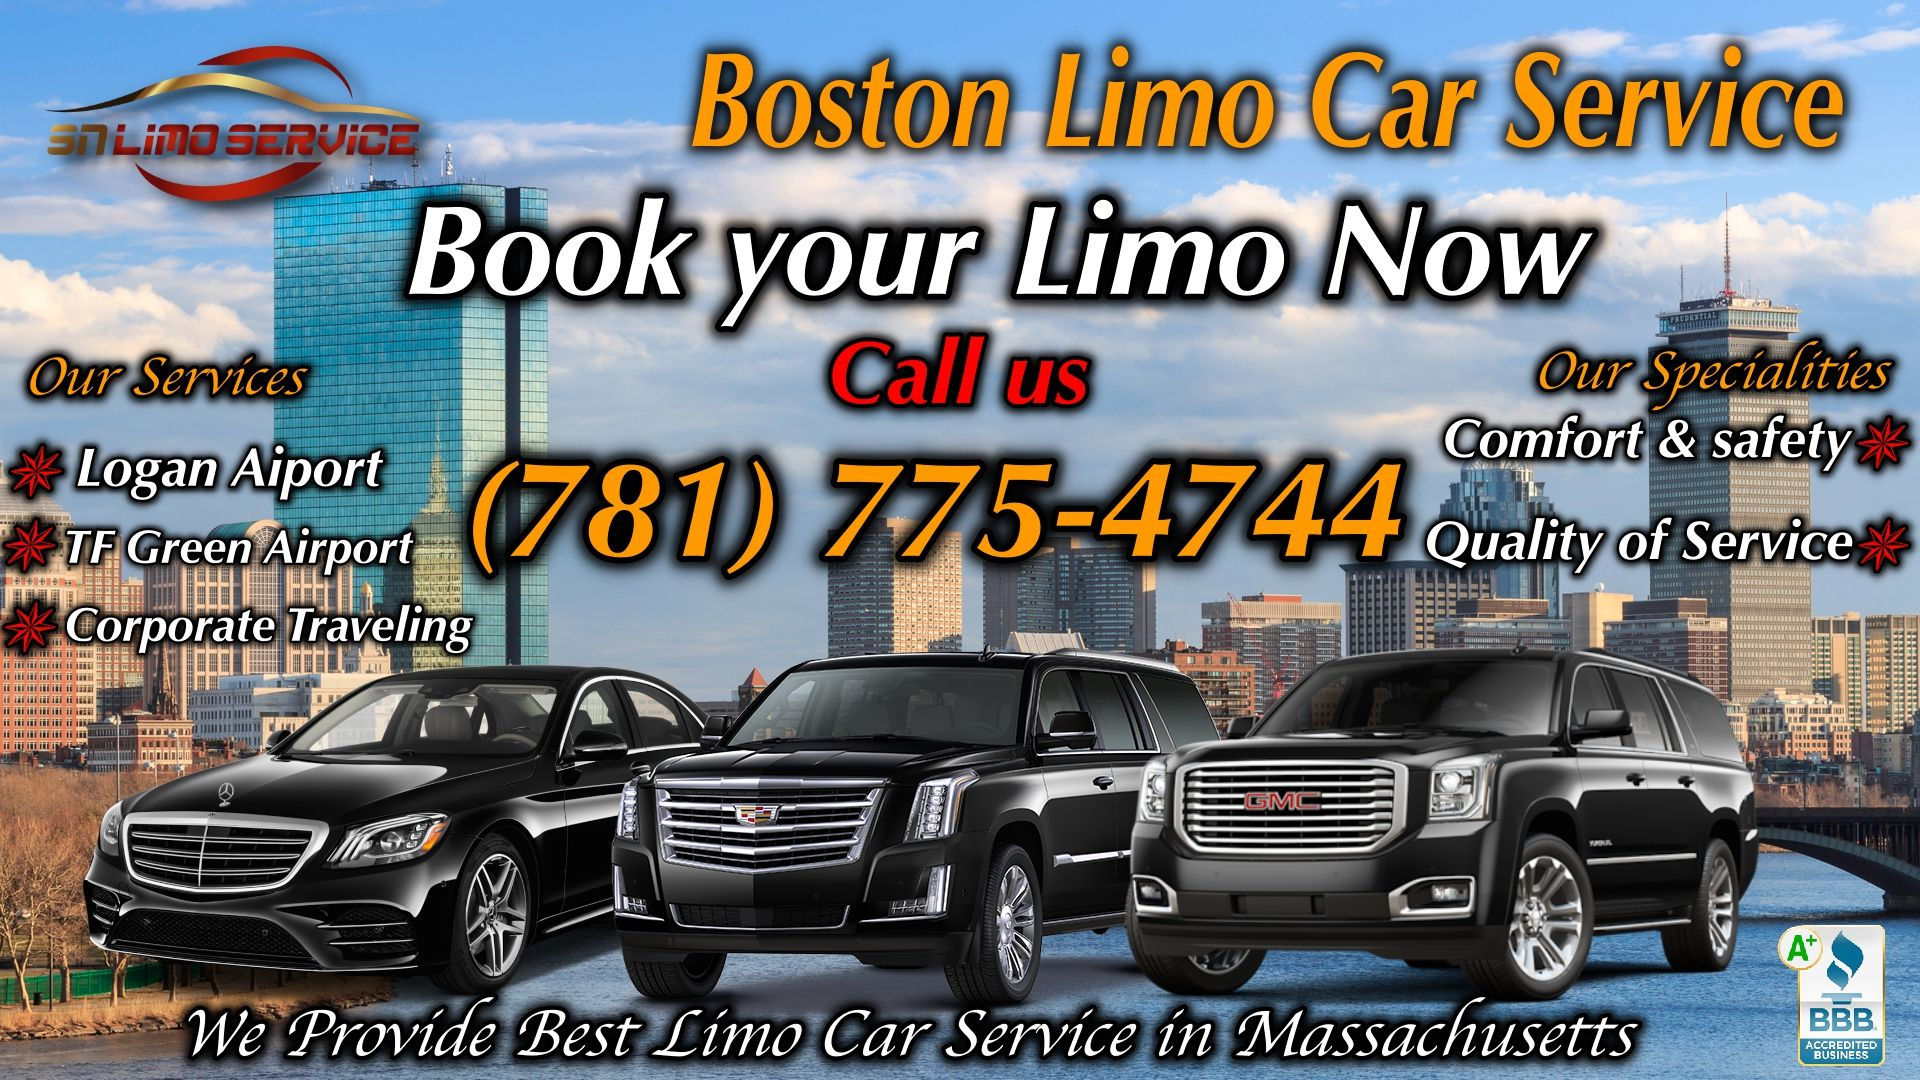 Boston Car Service Sn Limo Service Providing Best Logan Airport Pickup With Logan Shuttle Service In Enterprise Car Rental Airport Limo Airport Limo Service